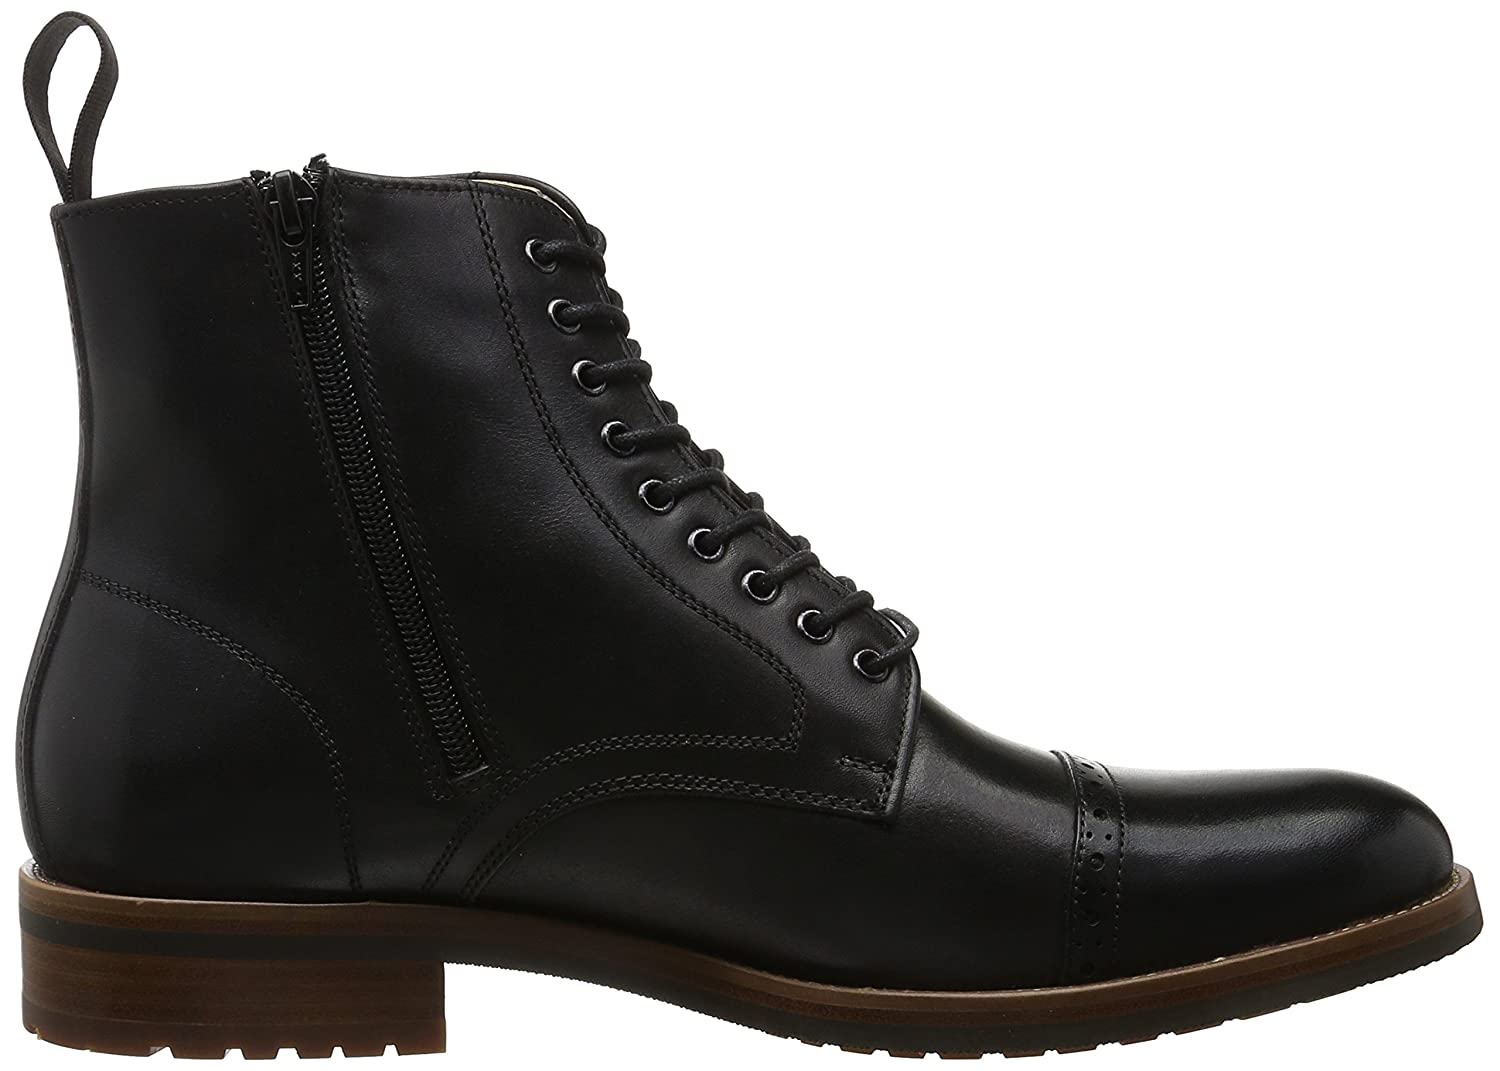 ALDO BEODUCA, Botines para Hombre, Negro (Black Leather / 97), 43 EU: Amazon.es: Zapatos y complementos